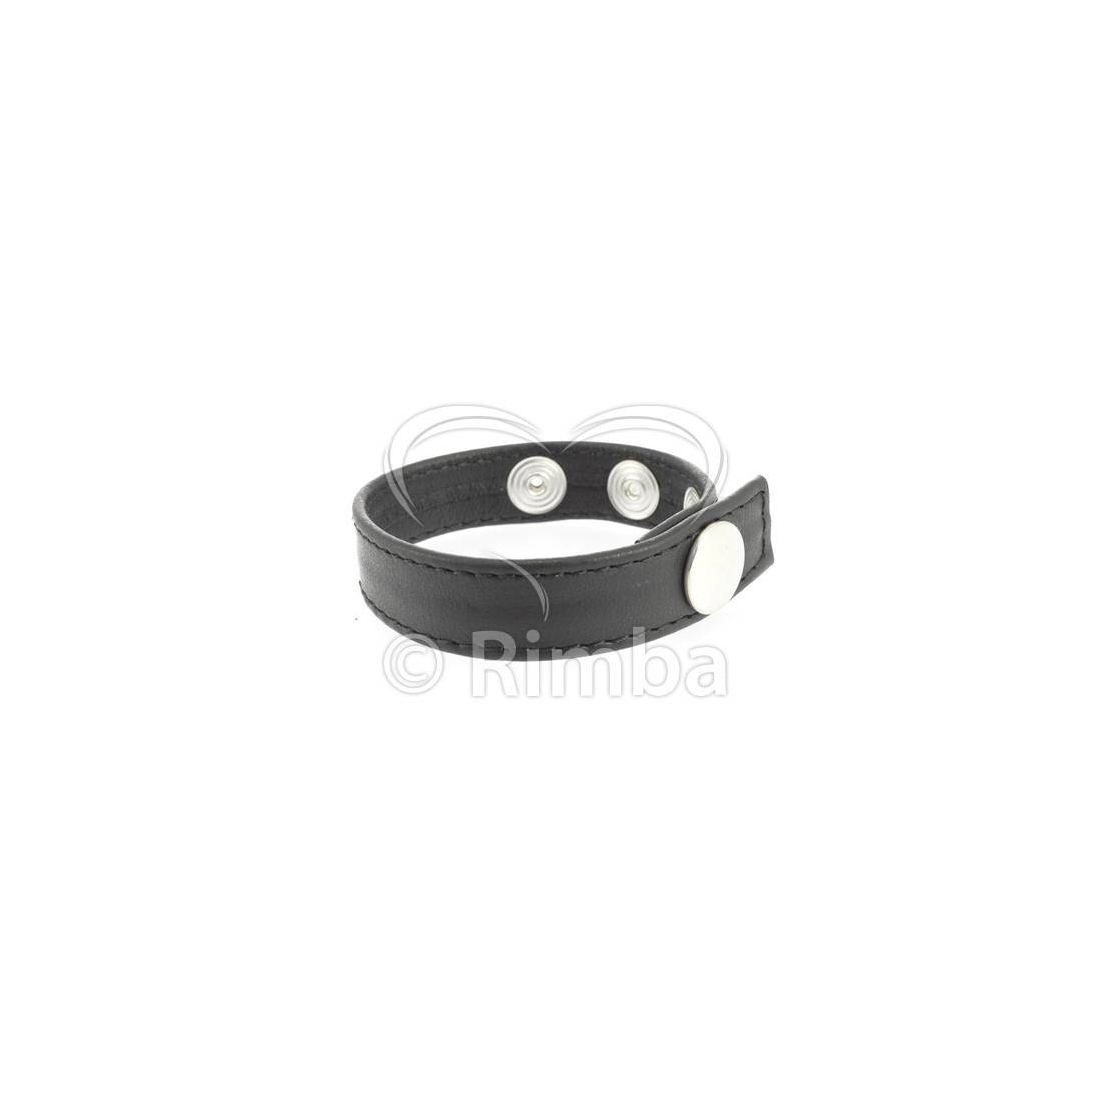 COCK RING ANELLO PER PENE REGOLABILE IN PELLE LEATHER